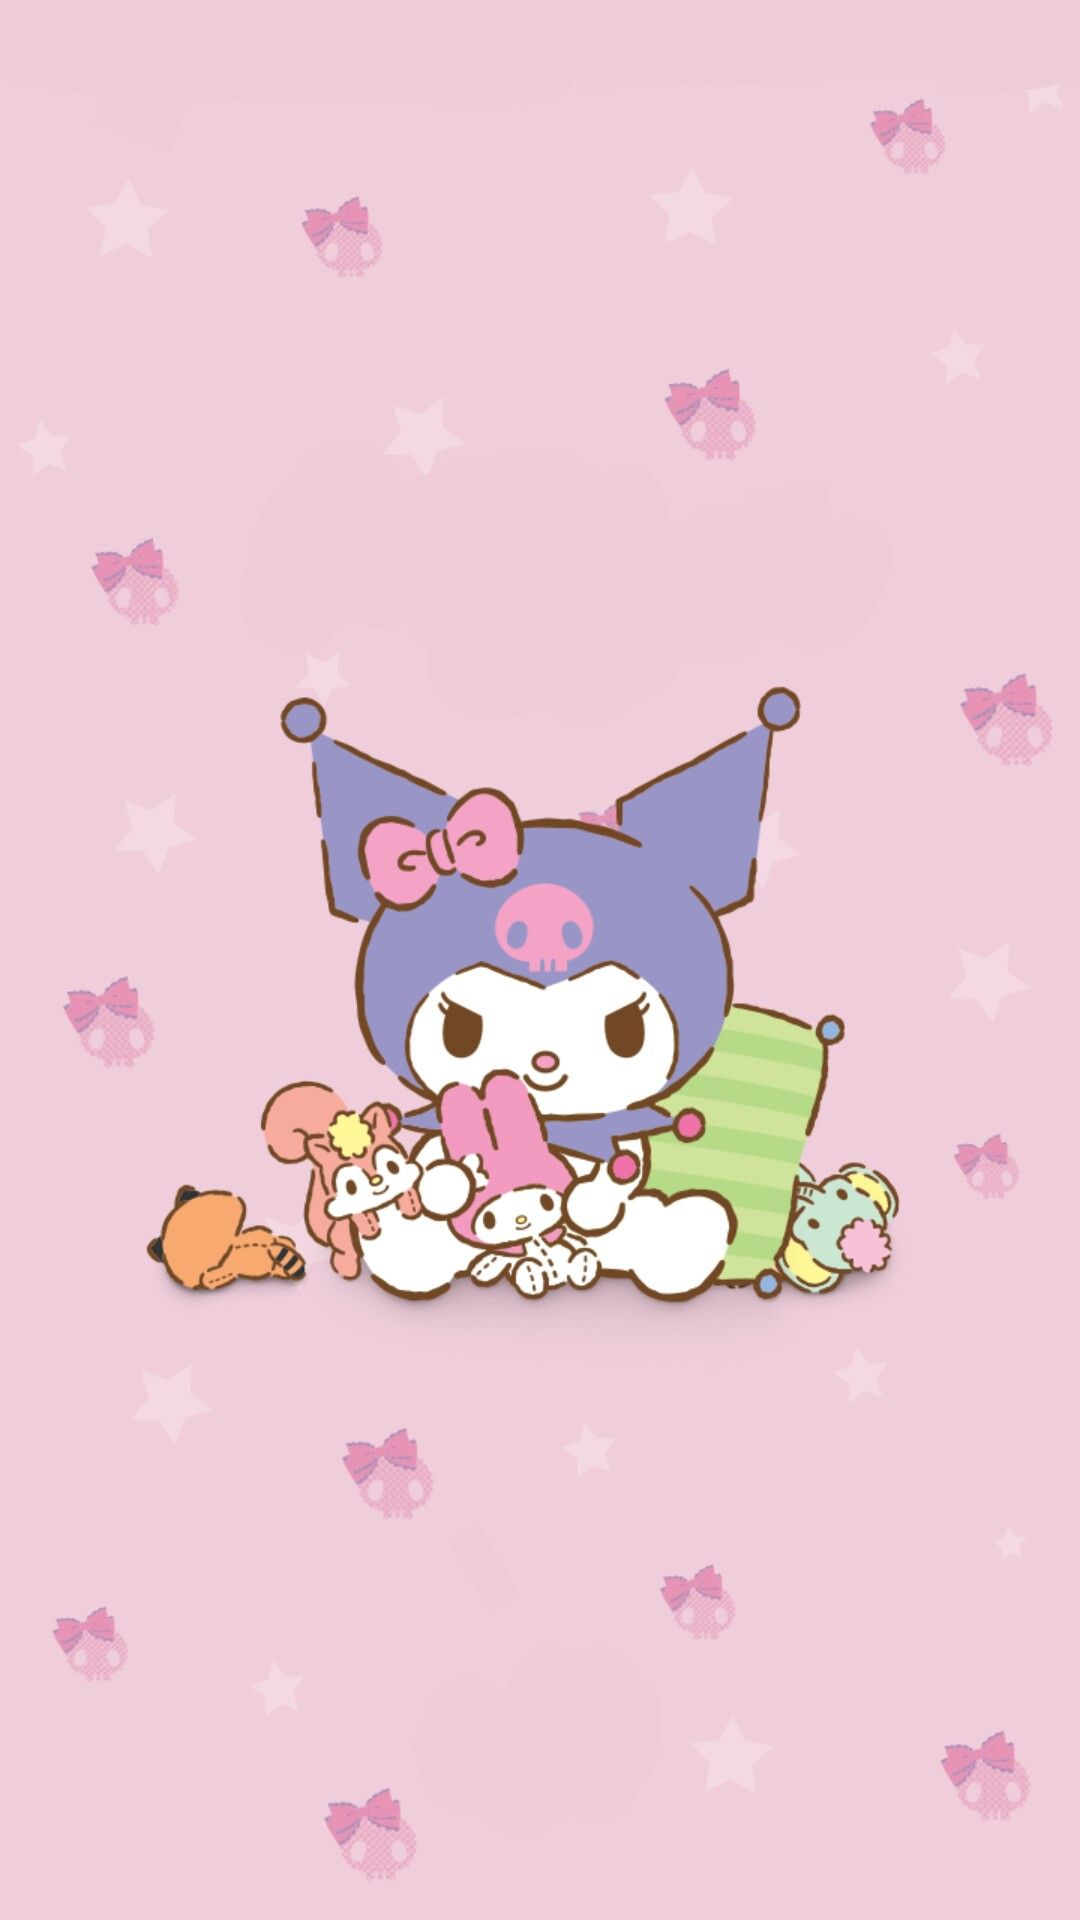 Wonderful Wallpaper Hello Kitty Animated - c837a4d656f5cfb23445b748c6e25e1e  Photograph_468294.jpg